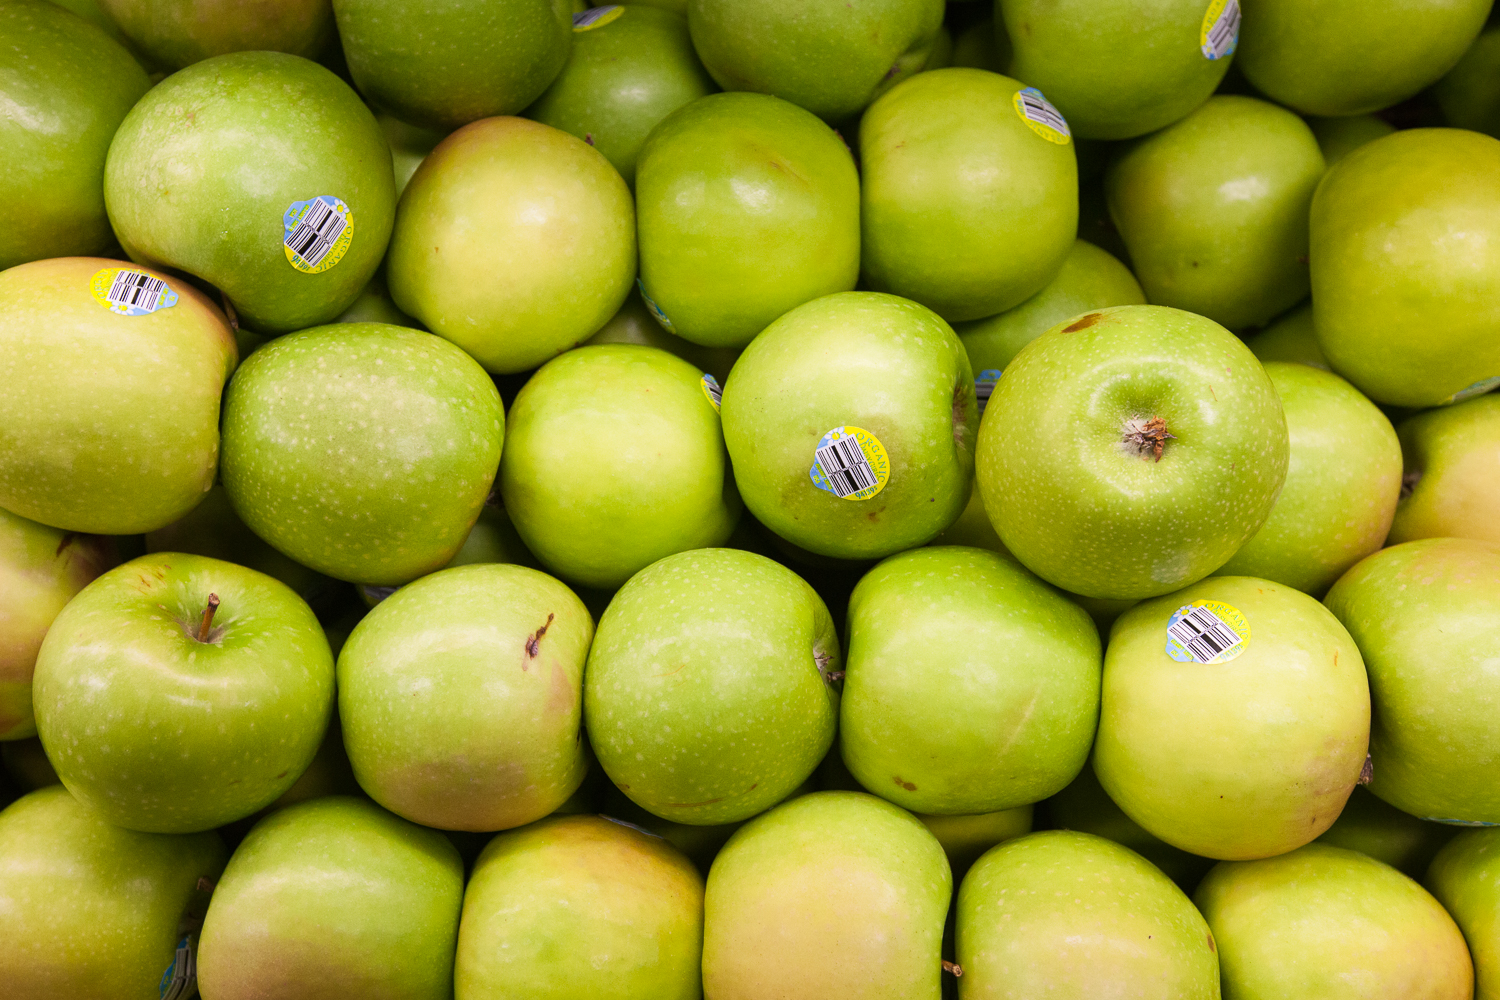 Organic Green Apples Mana Foods Produce Department